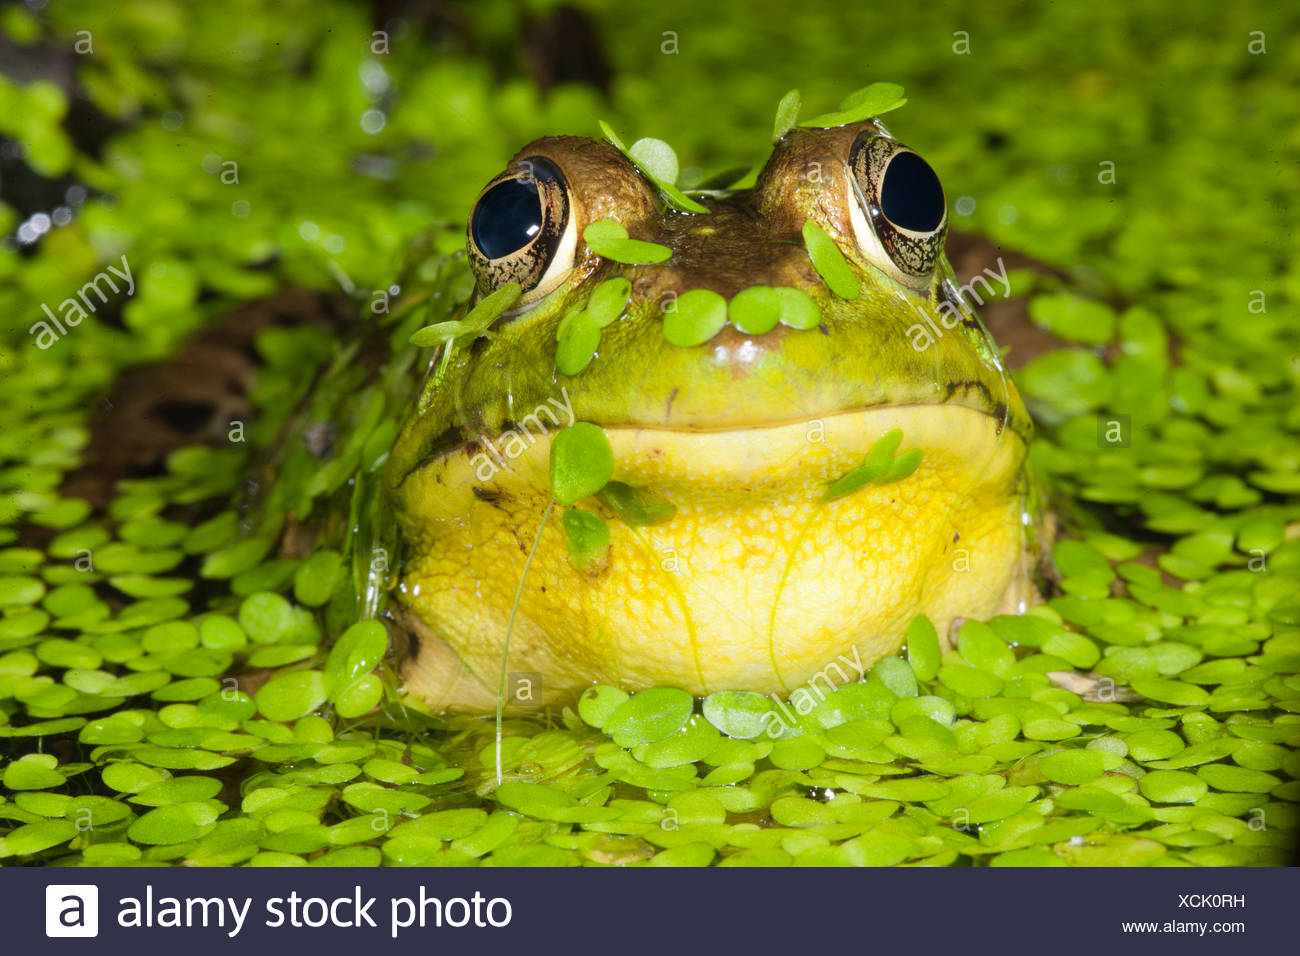 Northern Green Frog in pond, Central PA, USA (Rana clamitans) - Stock Image